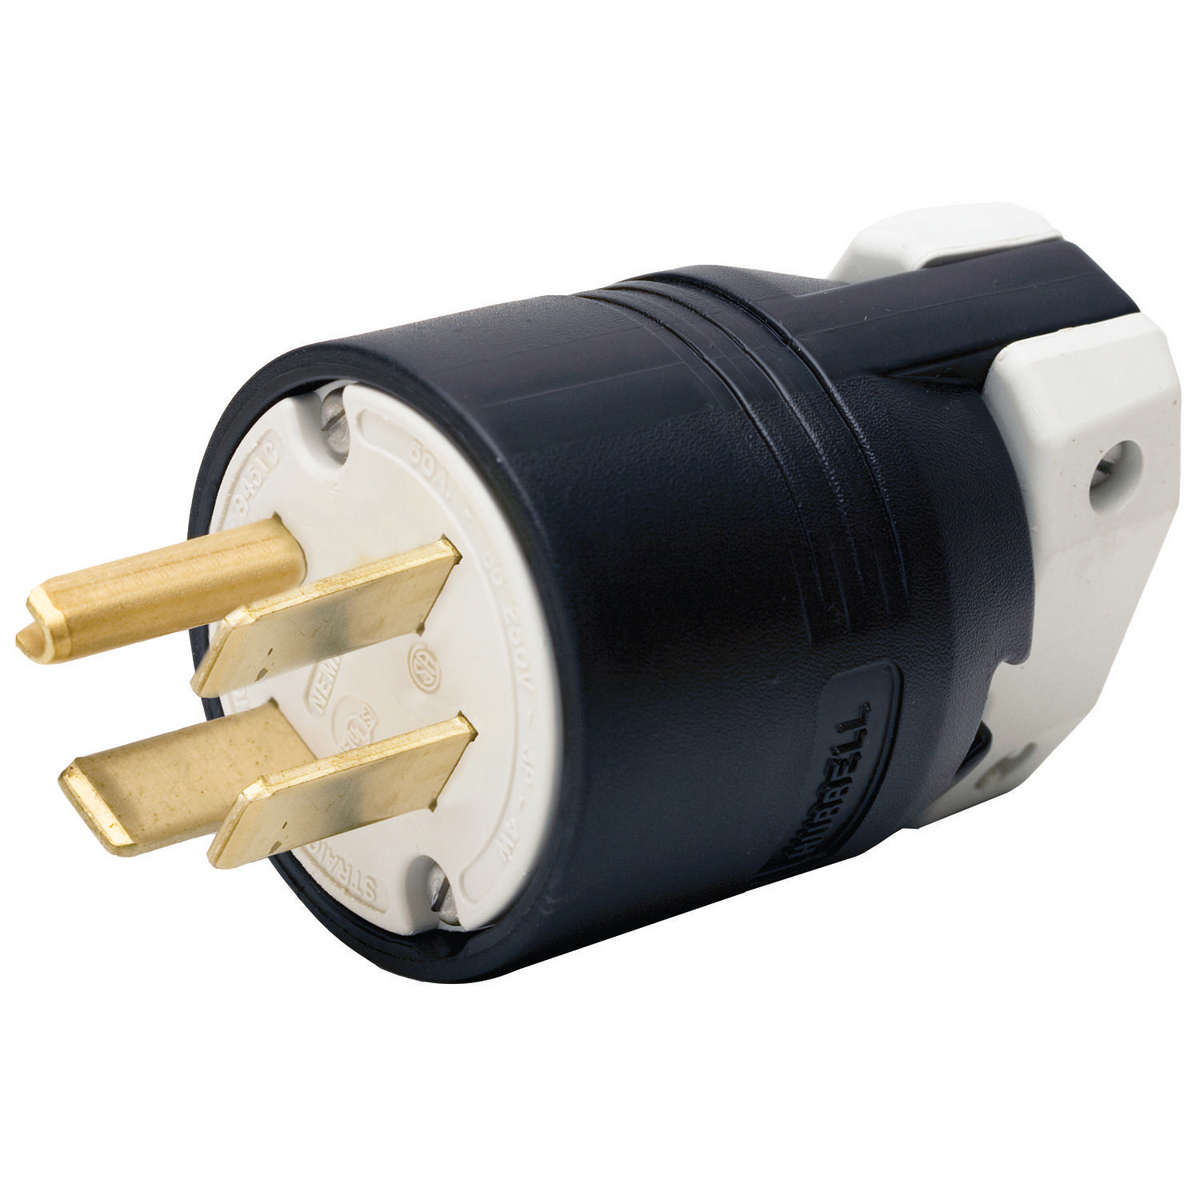 HUBBELL WIRING DEVICE-KELLEMS RCT200NI Ktcn Cntr,Receptacle,Surf Nickel,15A Kit